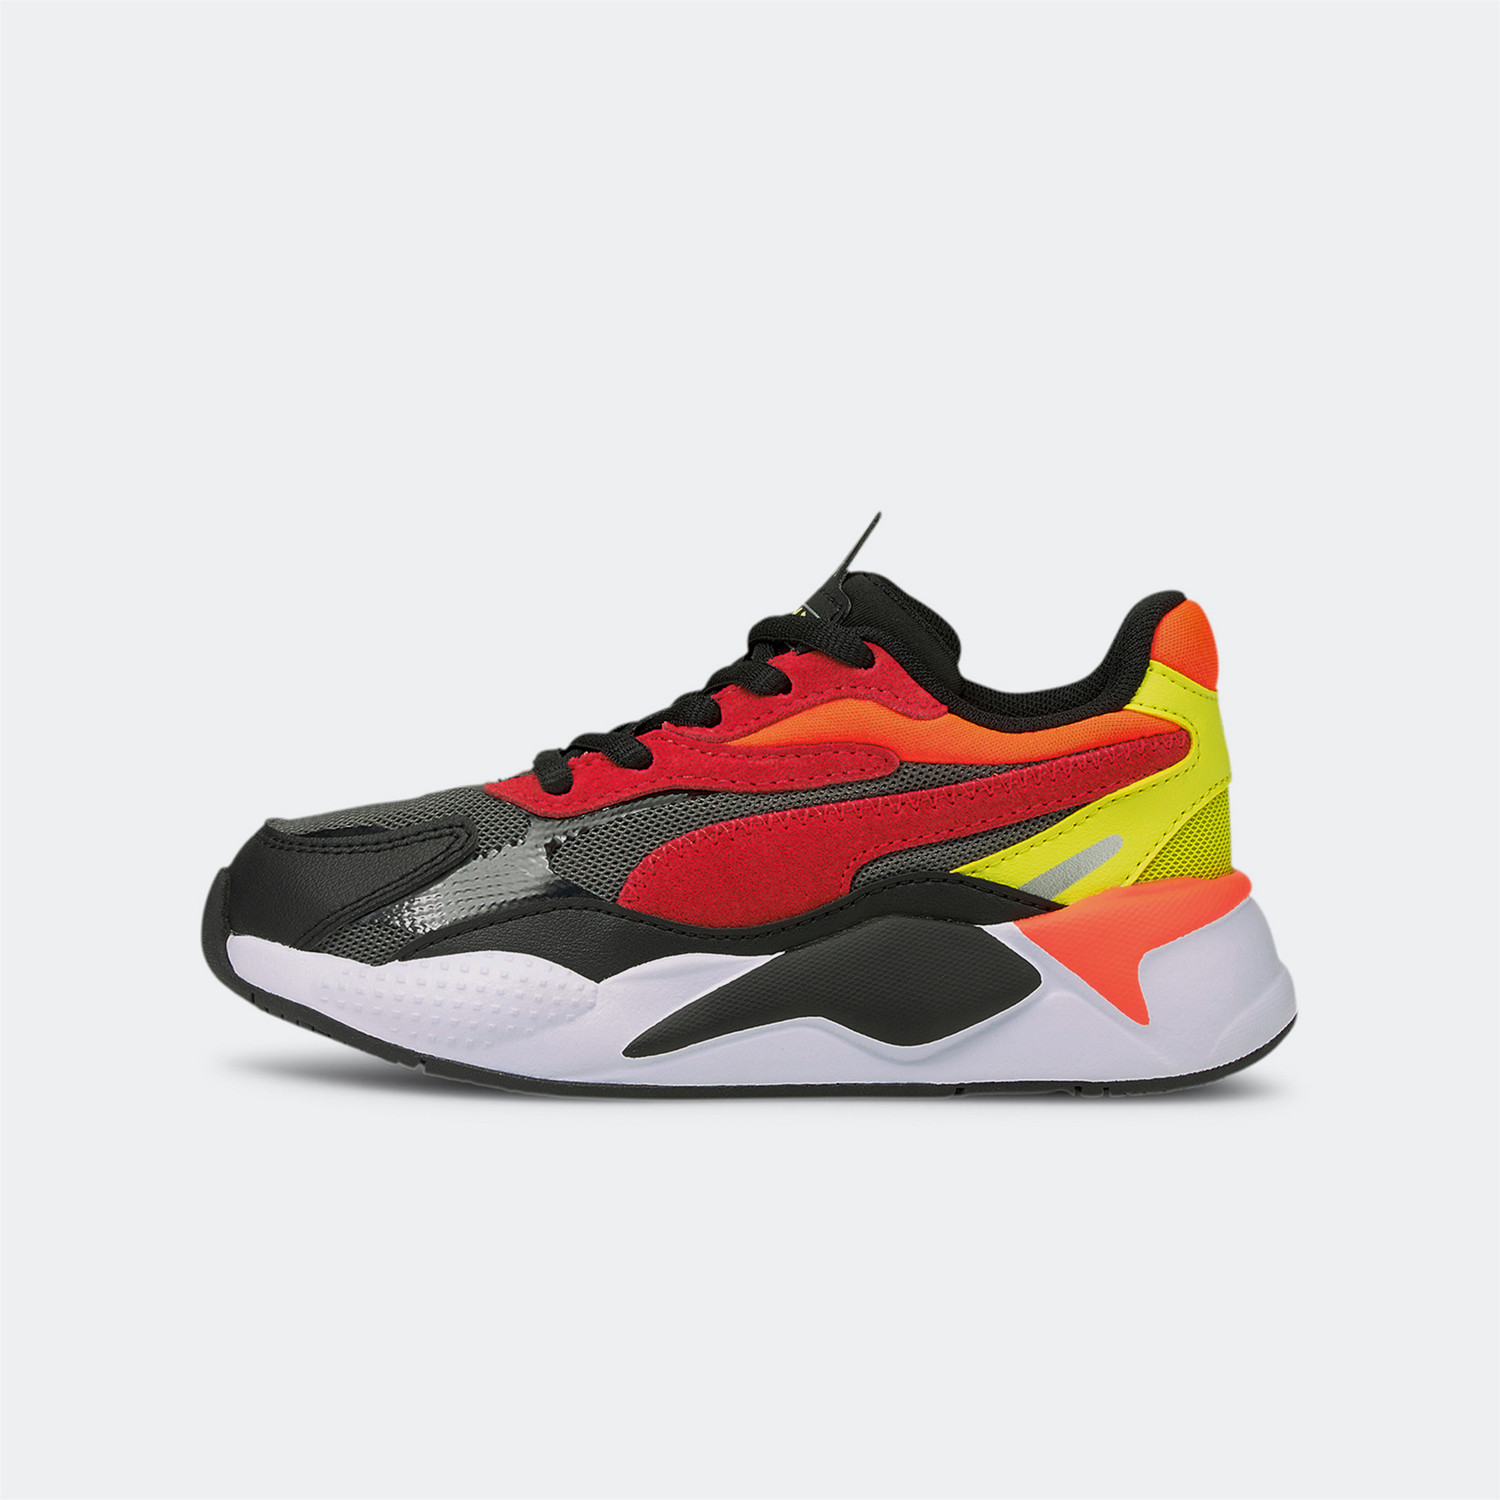 Puma Rs-X3 Neo-Flame Little Παιδικά Παπούτσια (9000072646_36628)